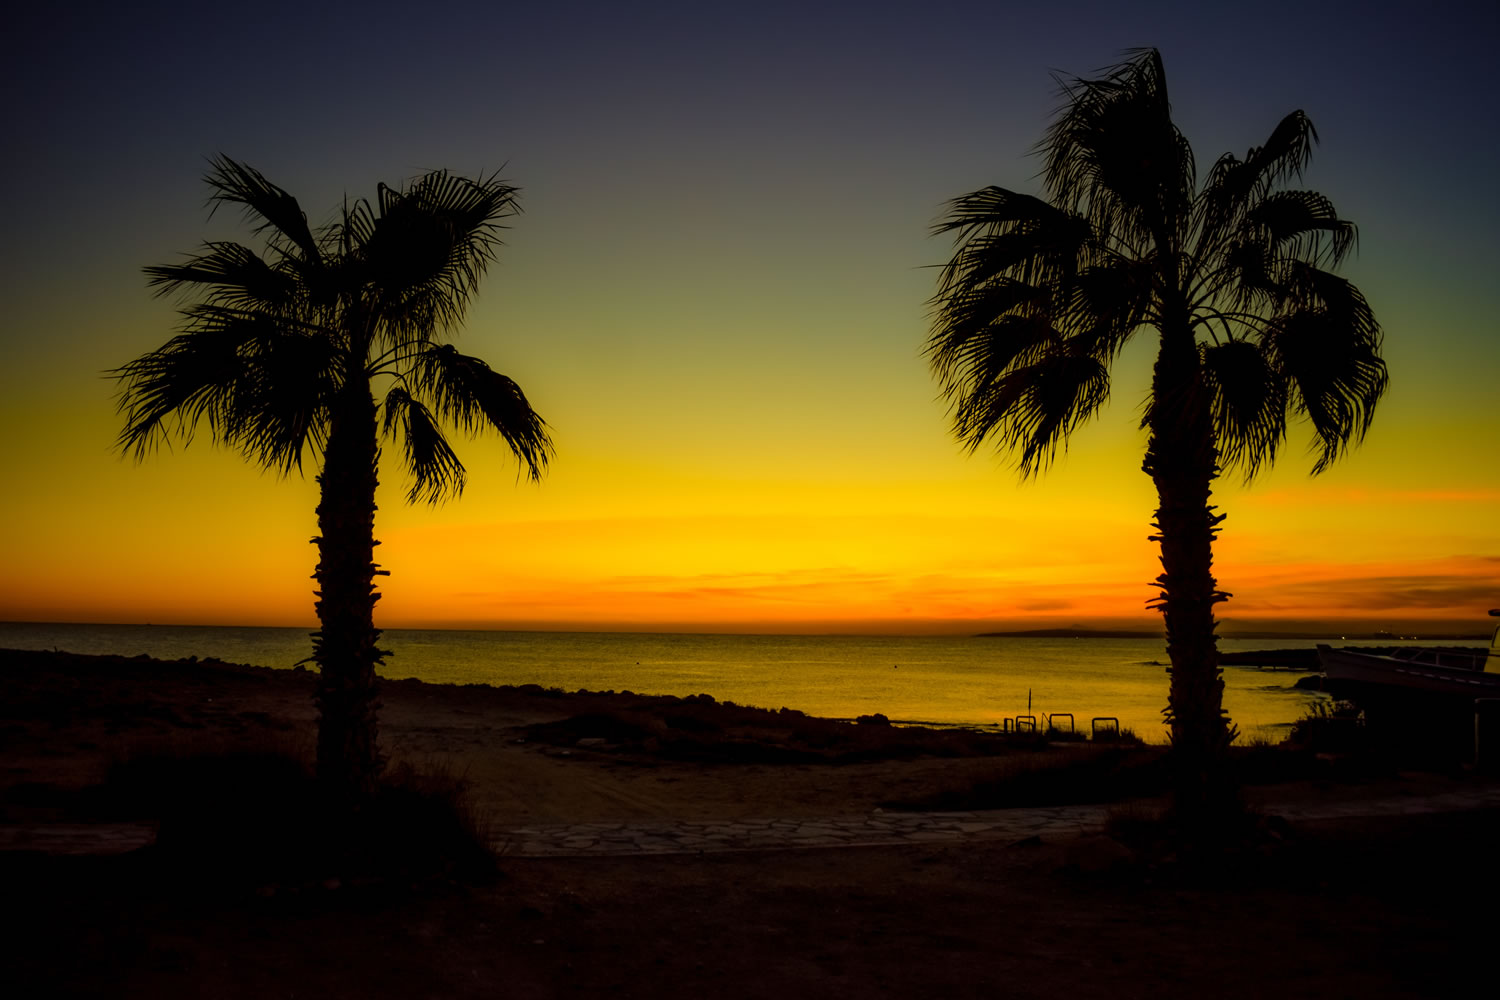 Palm Trees At Night Wallpaper Mural